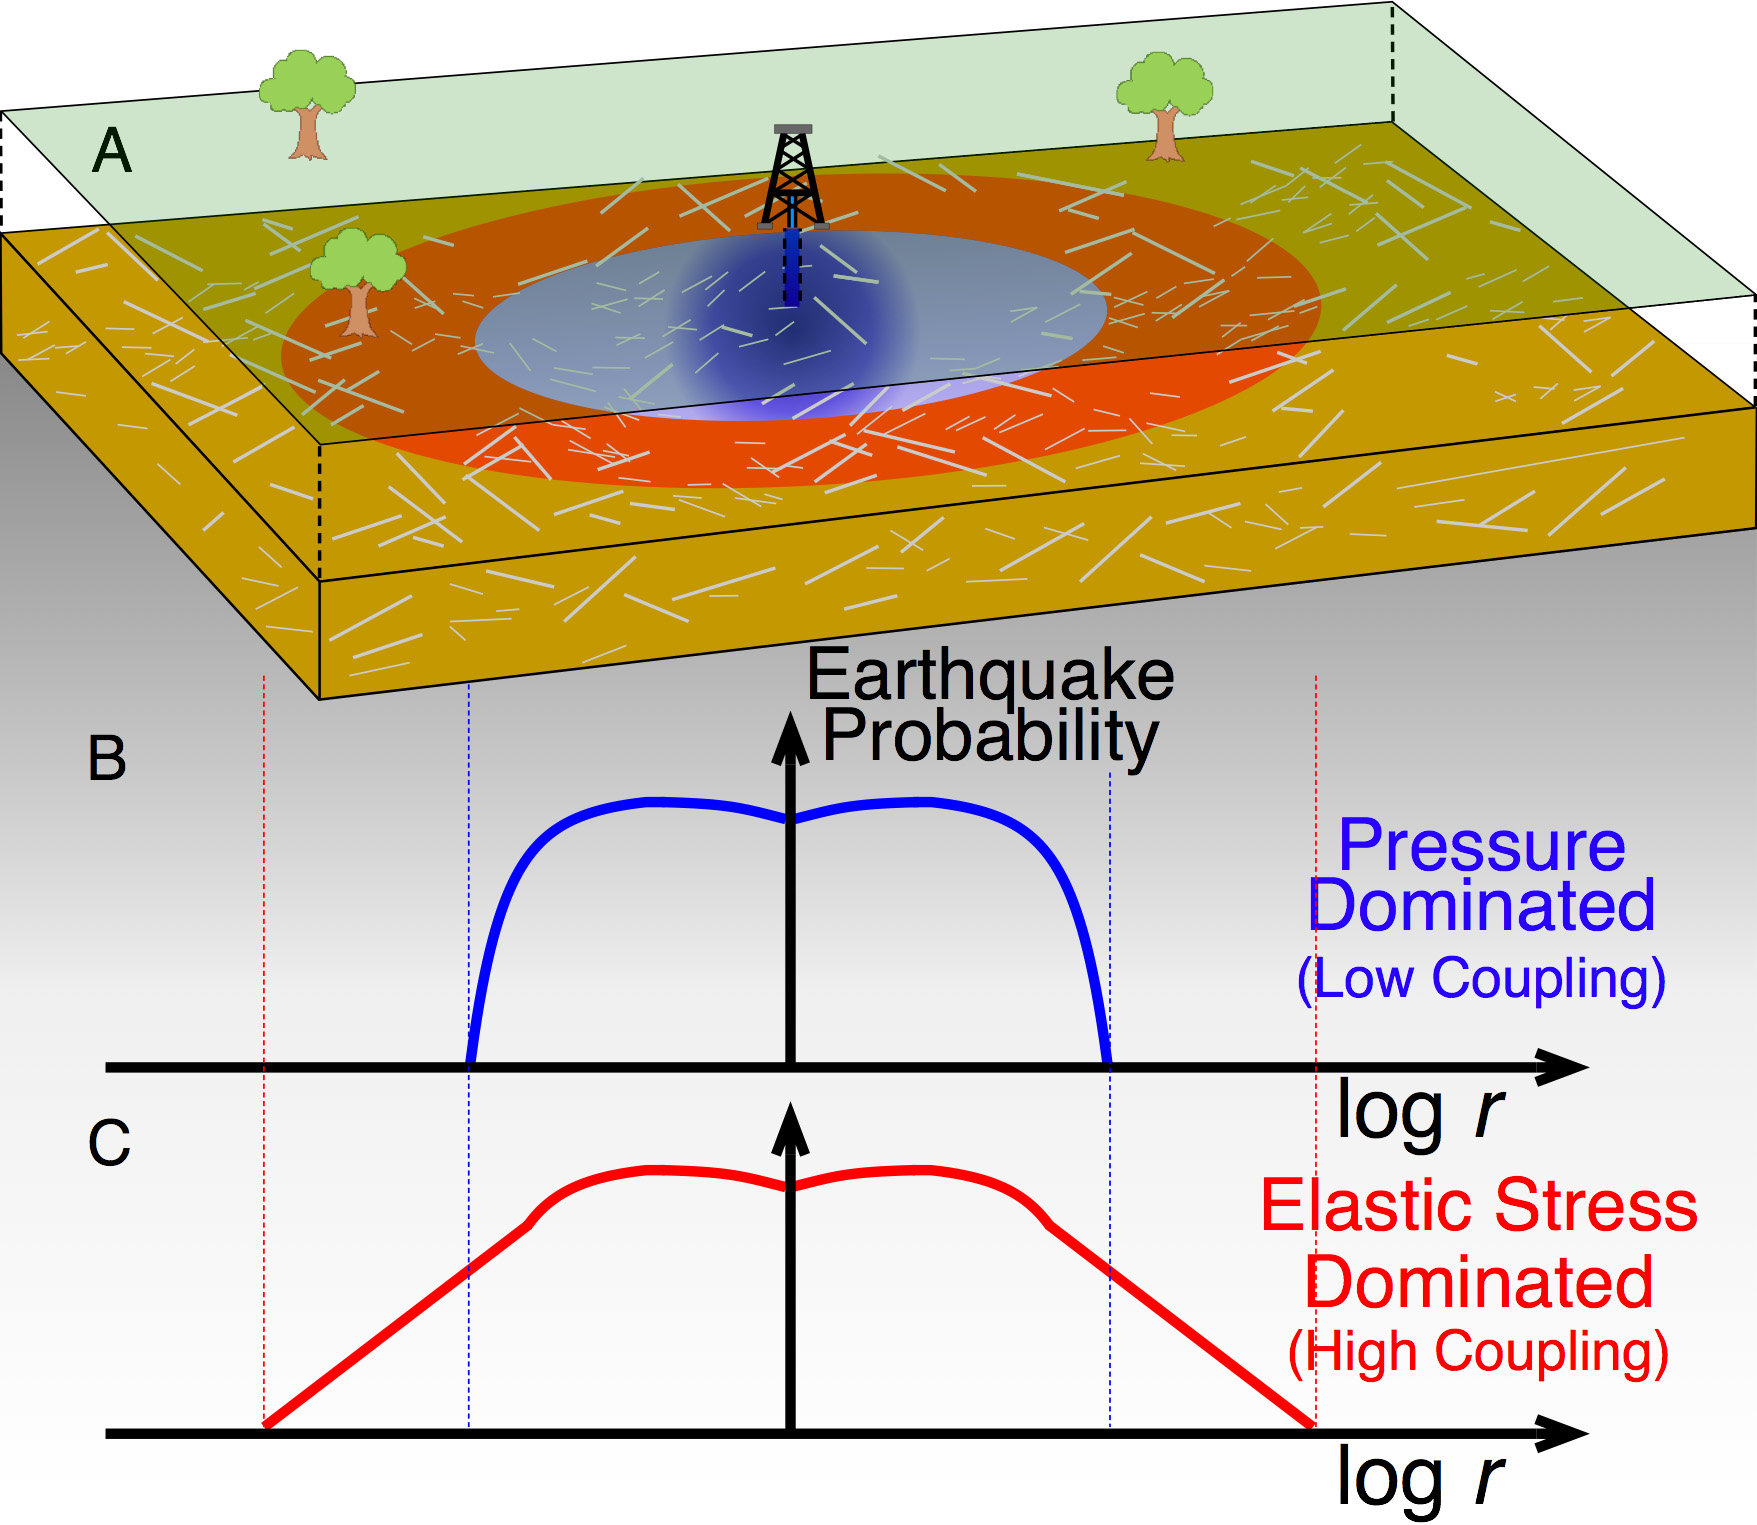 Injection Wells Can Induce Earthquakes Miles Away From The